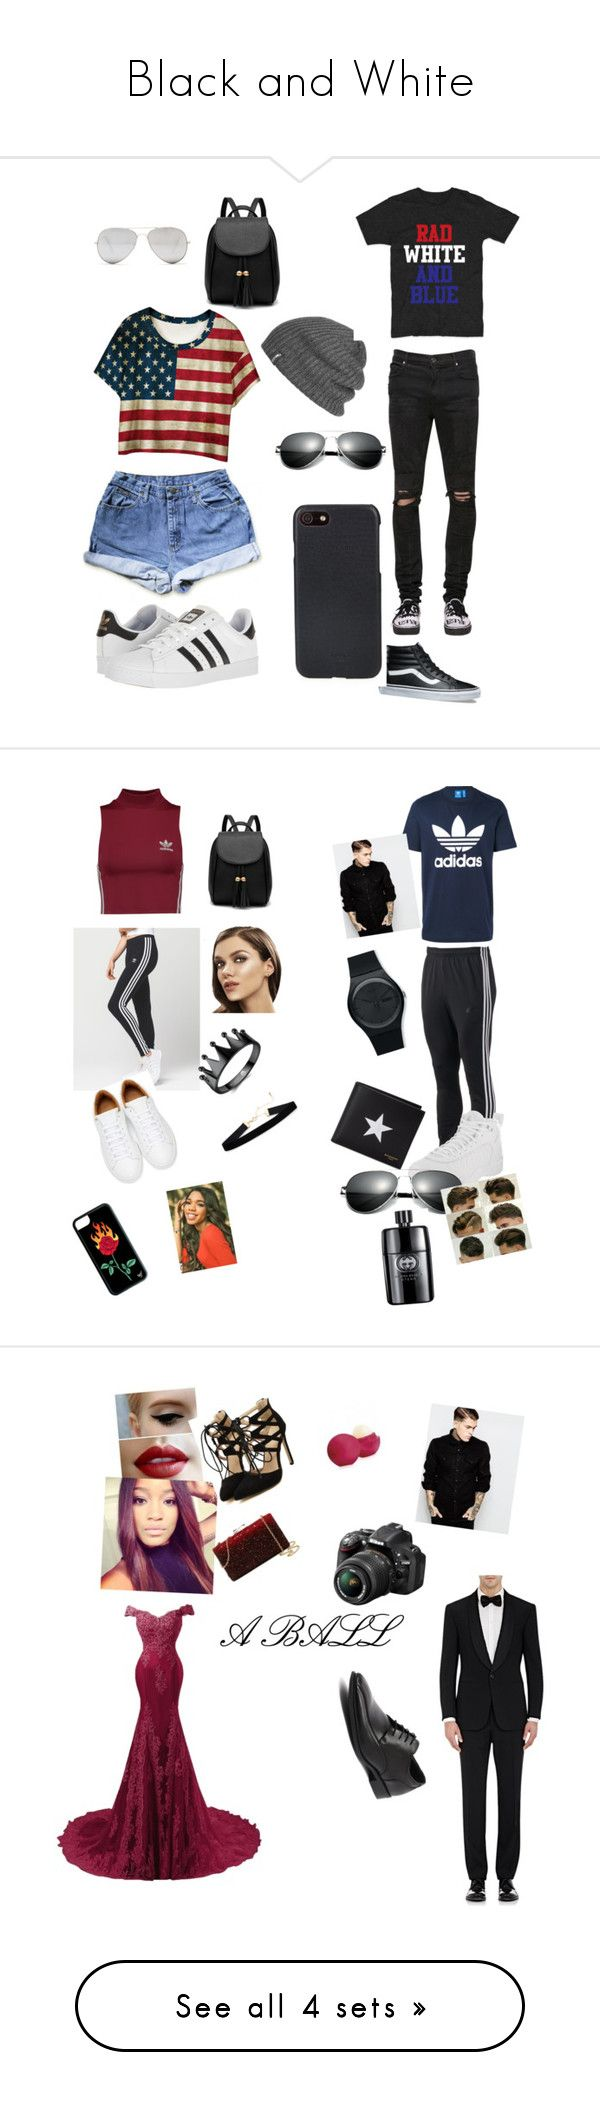 """""""Black and White"""" by ashley2503 ❤ liked on Polyvore featuring WithChic, adidas, Sunny Rebel, RtA, Vans, Shinola, Outdoor Research, adidas Originals, Dunn and Swatch"""